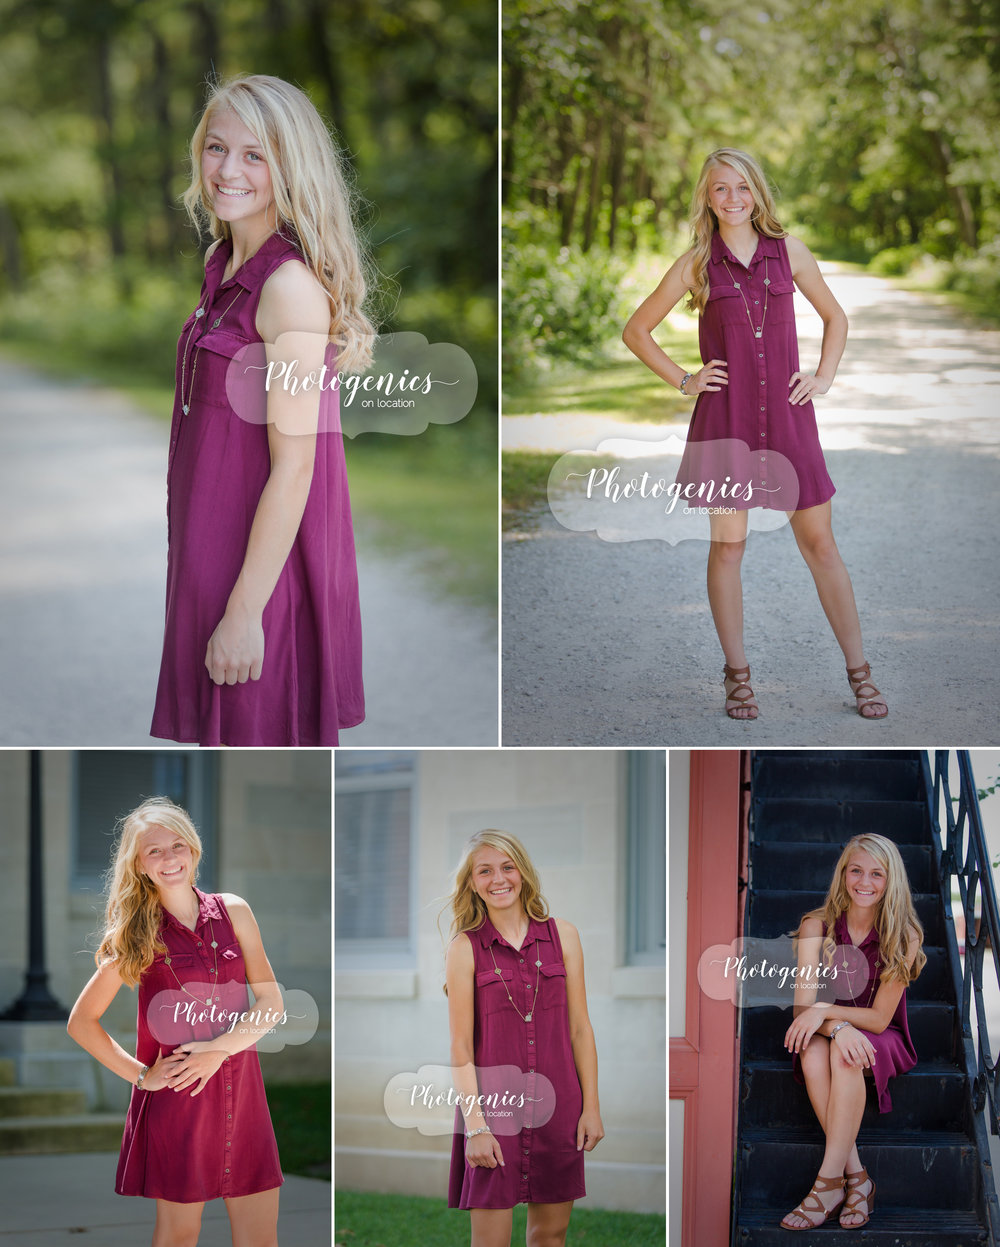 senior_girl_nature_photography_poses_softball_ideas_summer_session_forest_urban_trendy 2.jpg